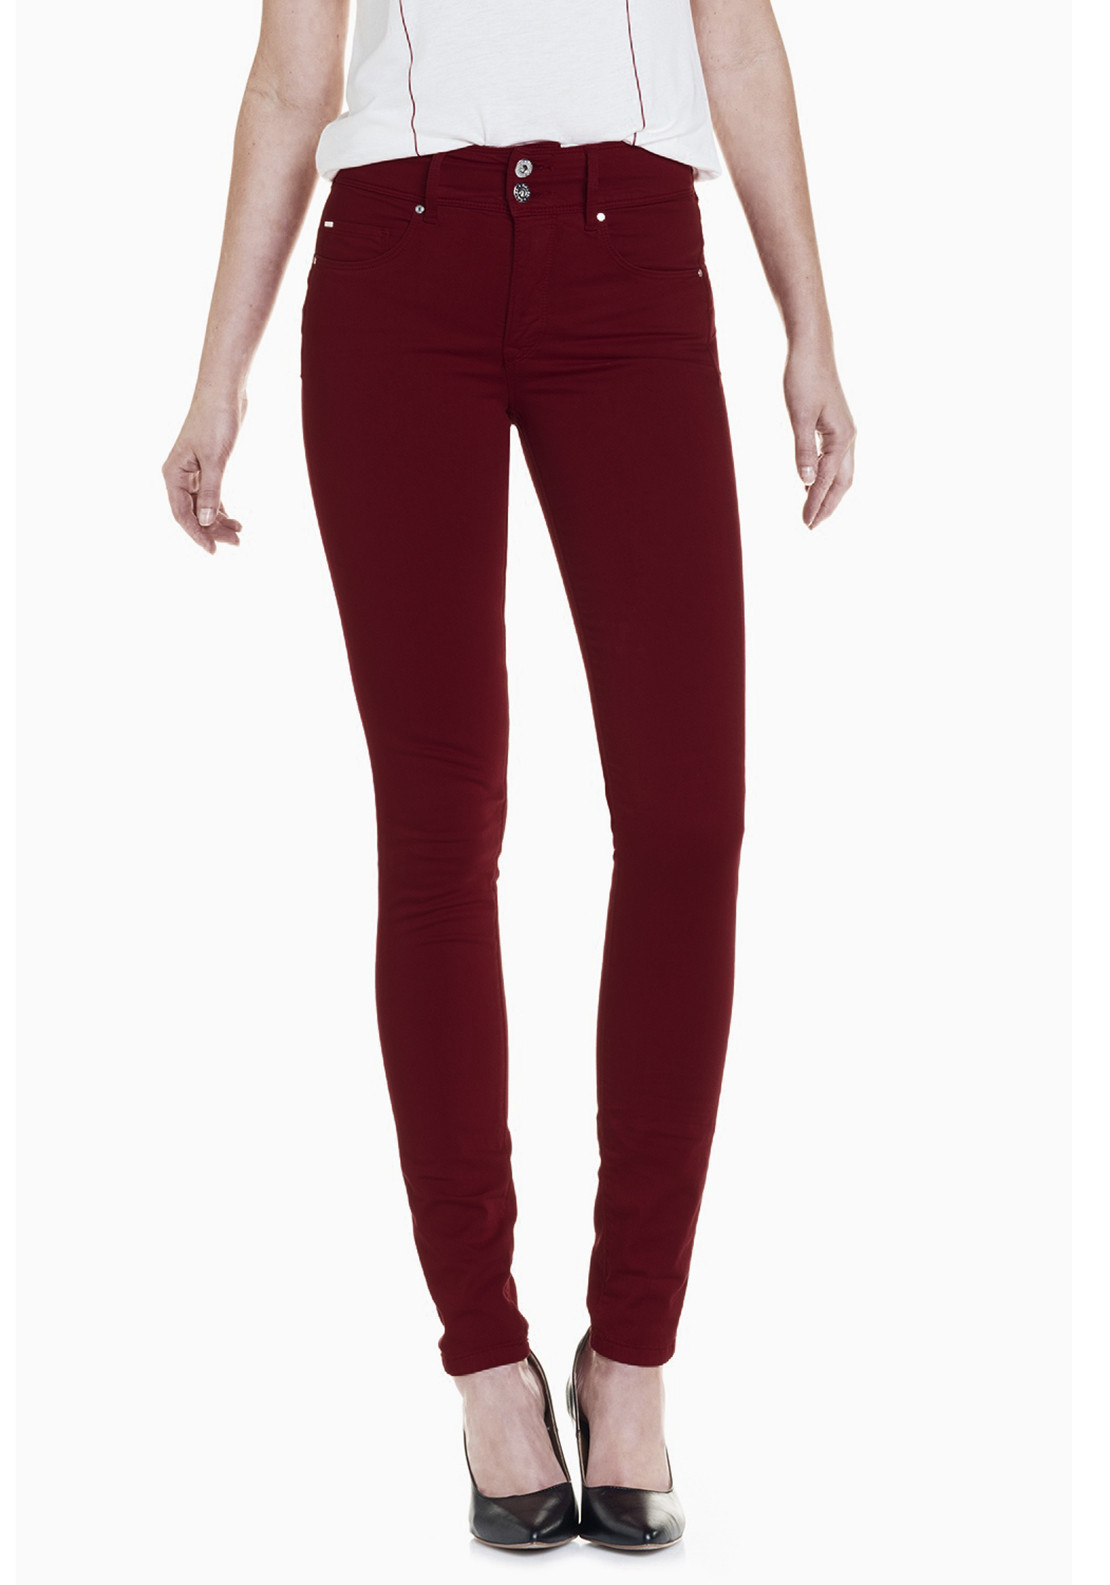 Find Red women's jeans at ShopStyle. Shop the latest collection of Red women's jeans from the most popular stores - all in one place.